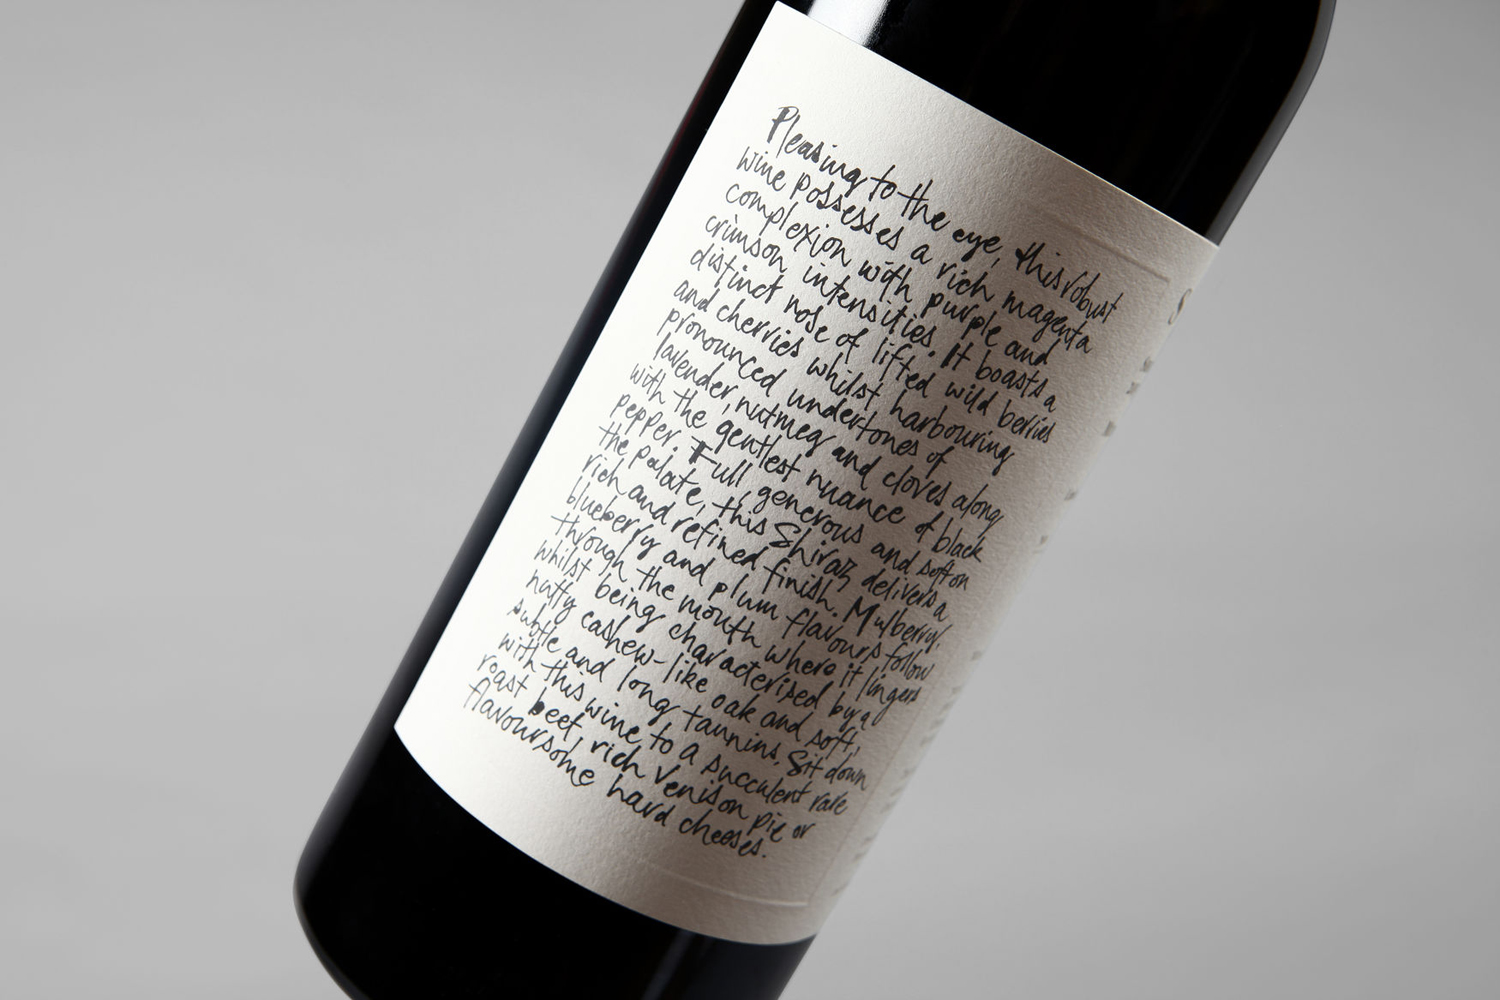 Wine label with blind emboss detail by Sydney-based Frost for Niche Wine Co.'s limited edition release Somm, an Australian Shiraz